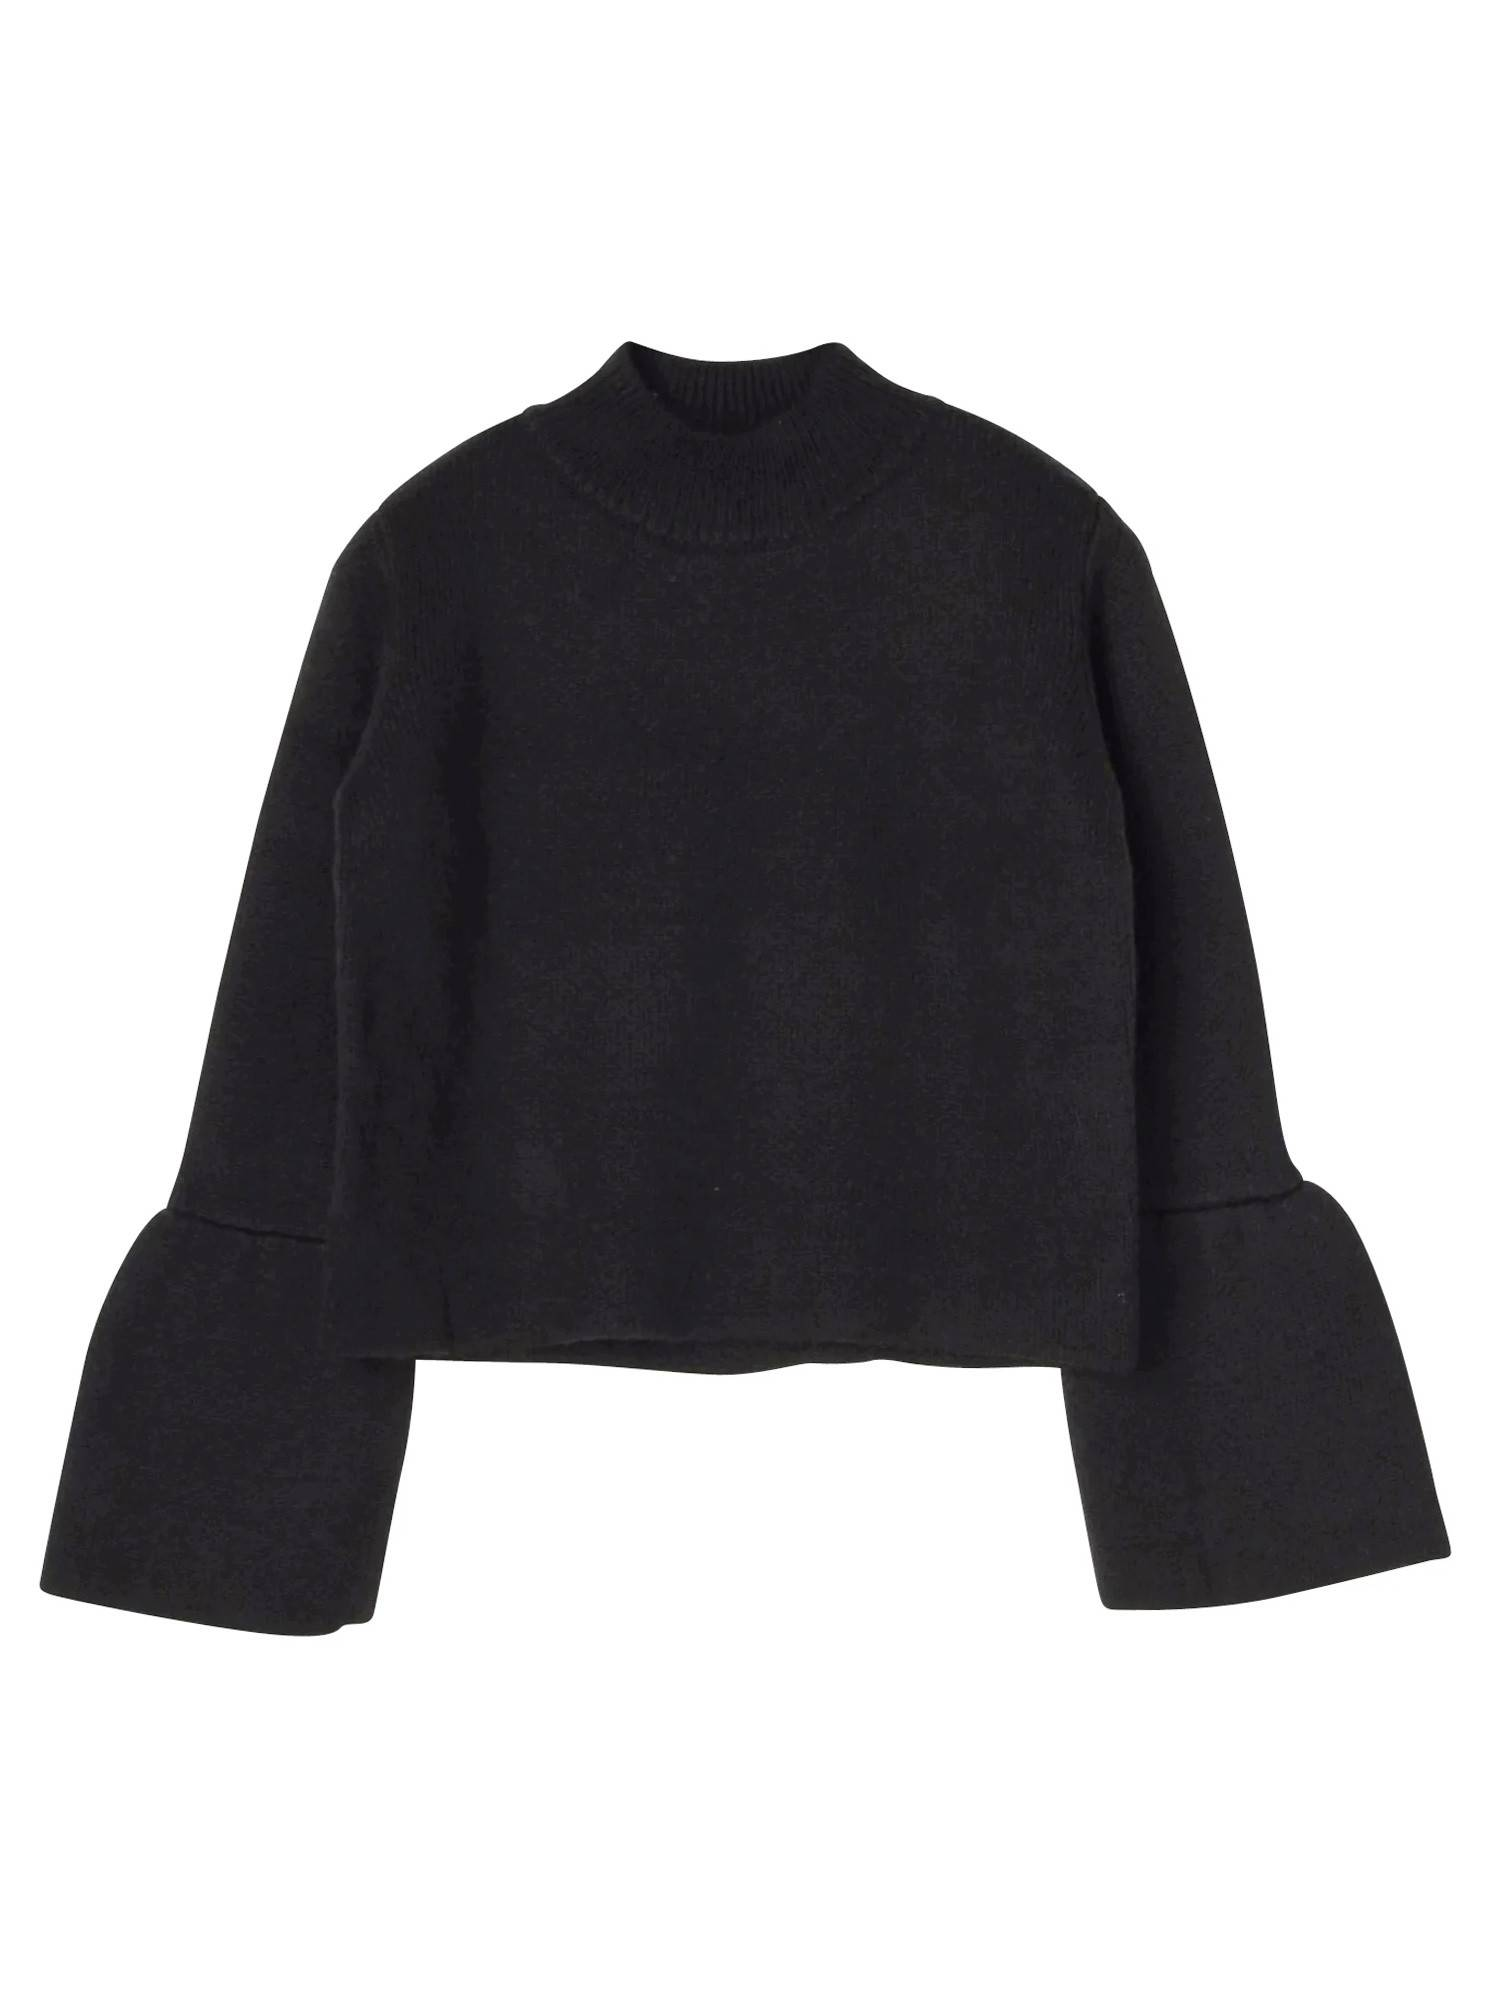 Stand trumpet sleeve knit